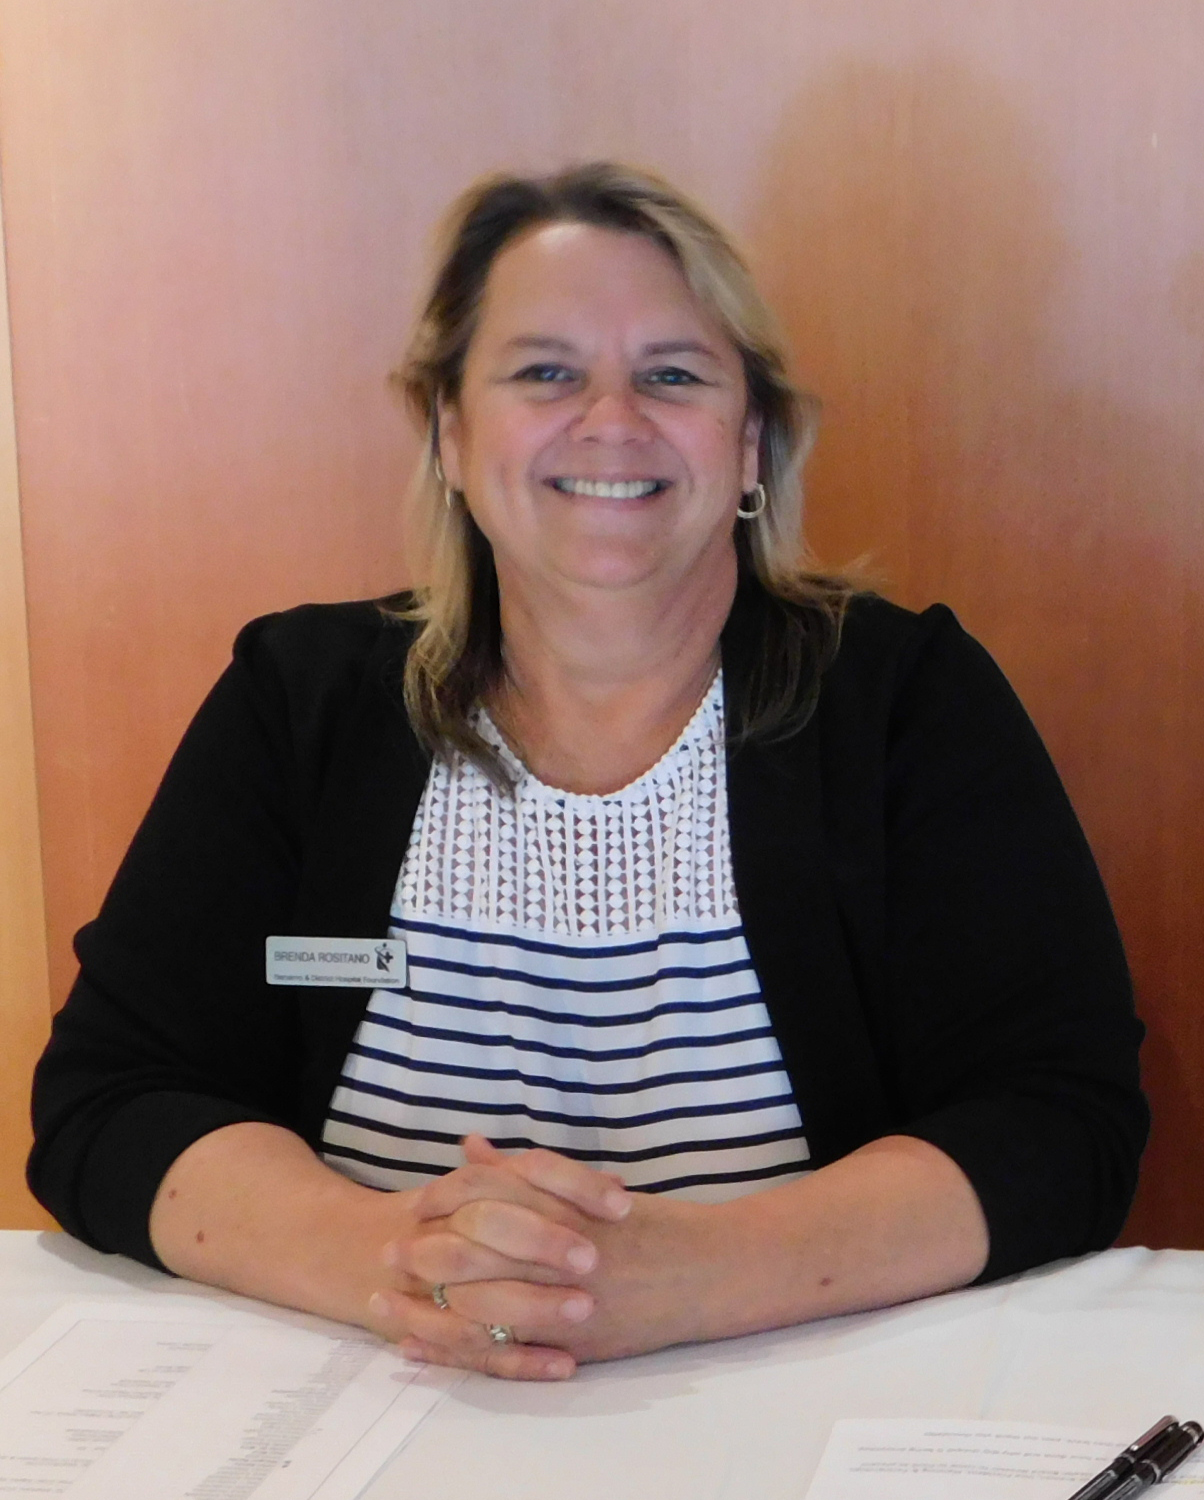 Foundation Mourns Loss of Colleague